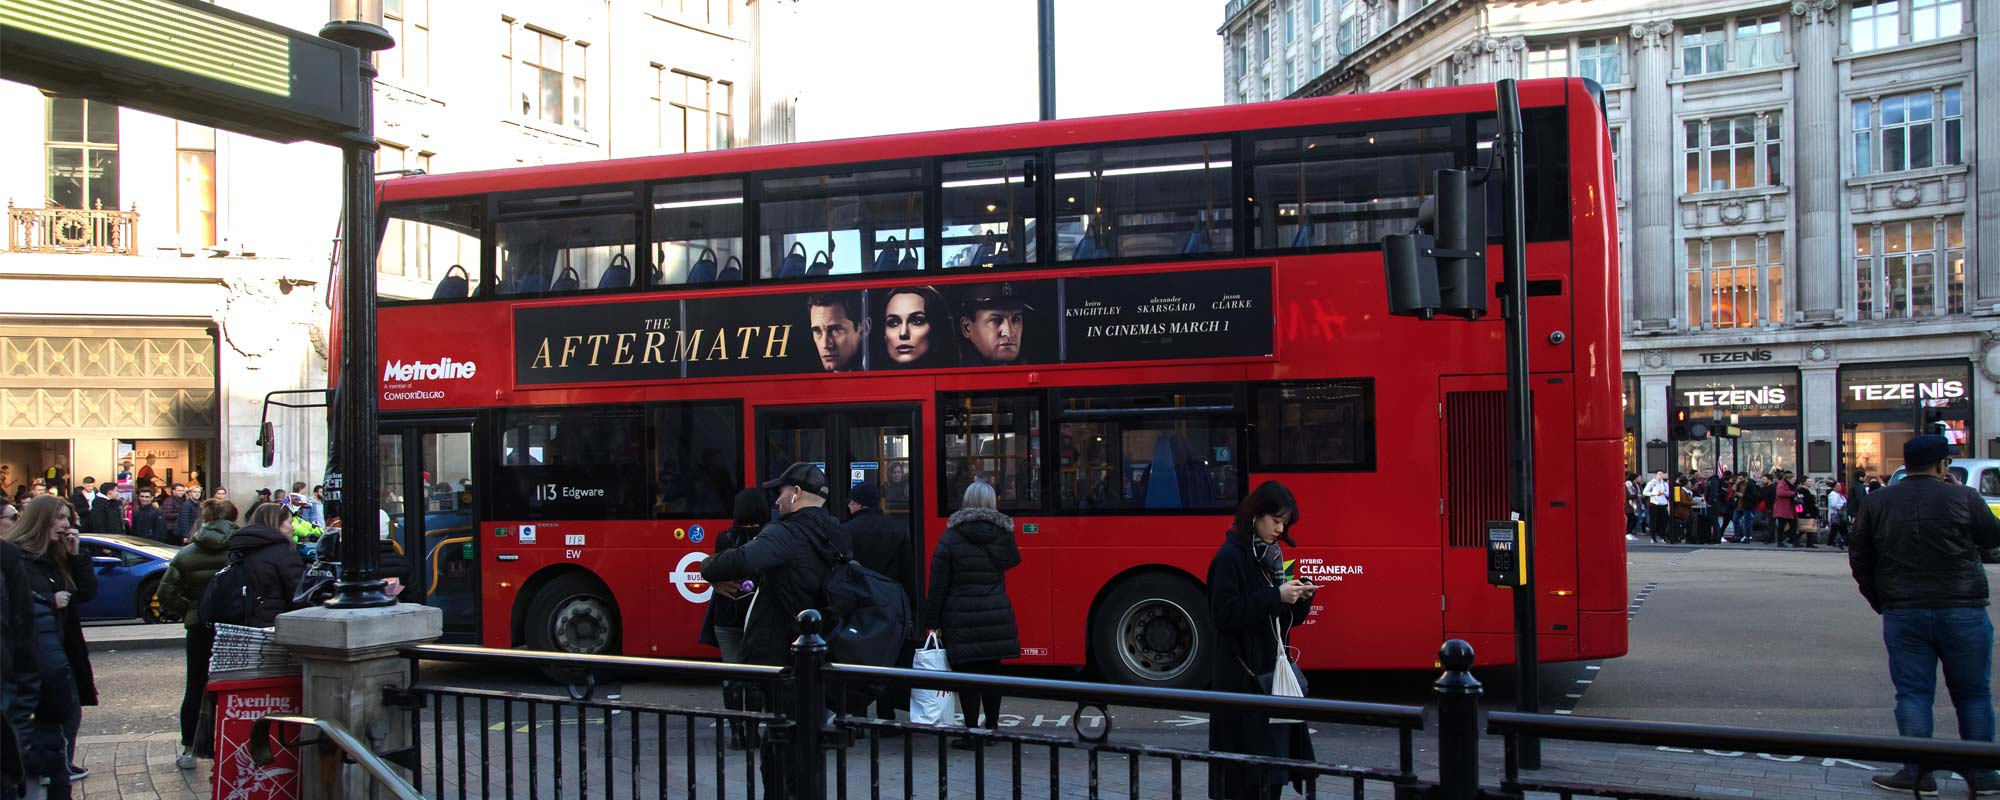 The Aftermath advertising on the side of a bus